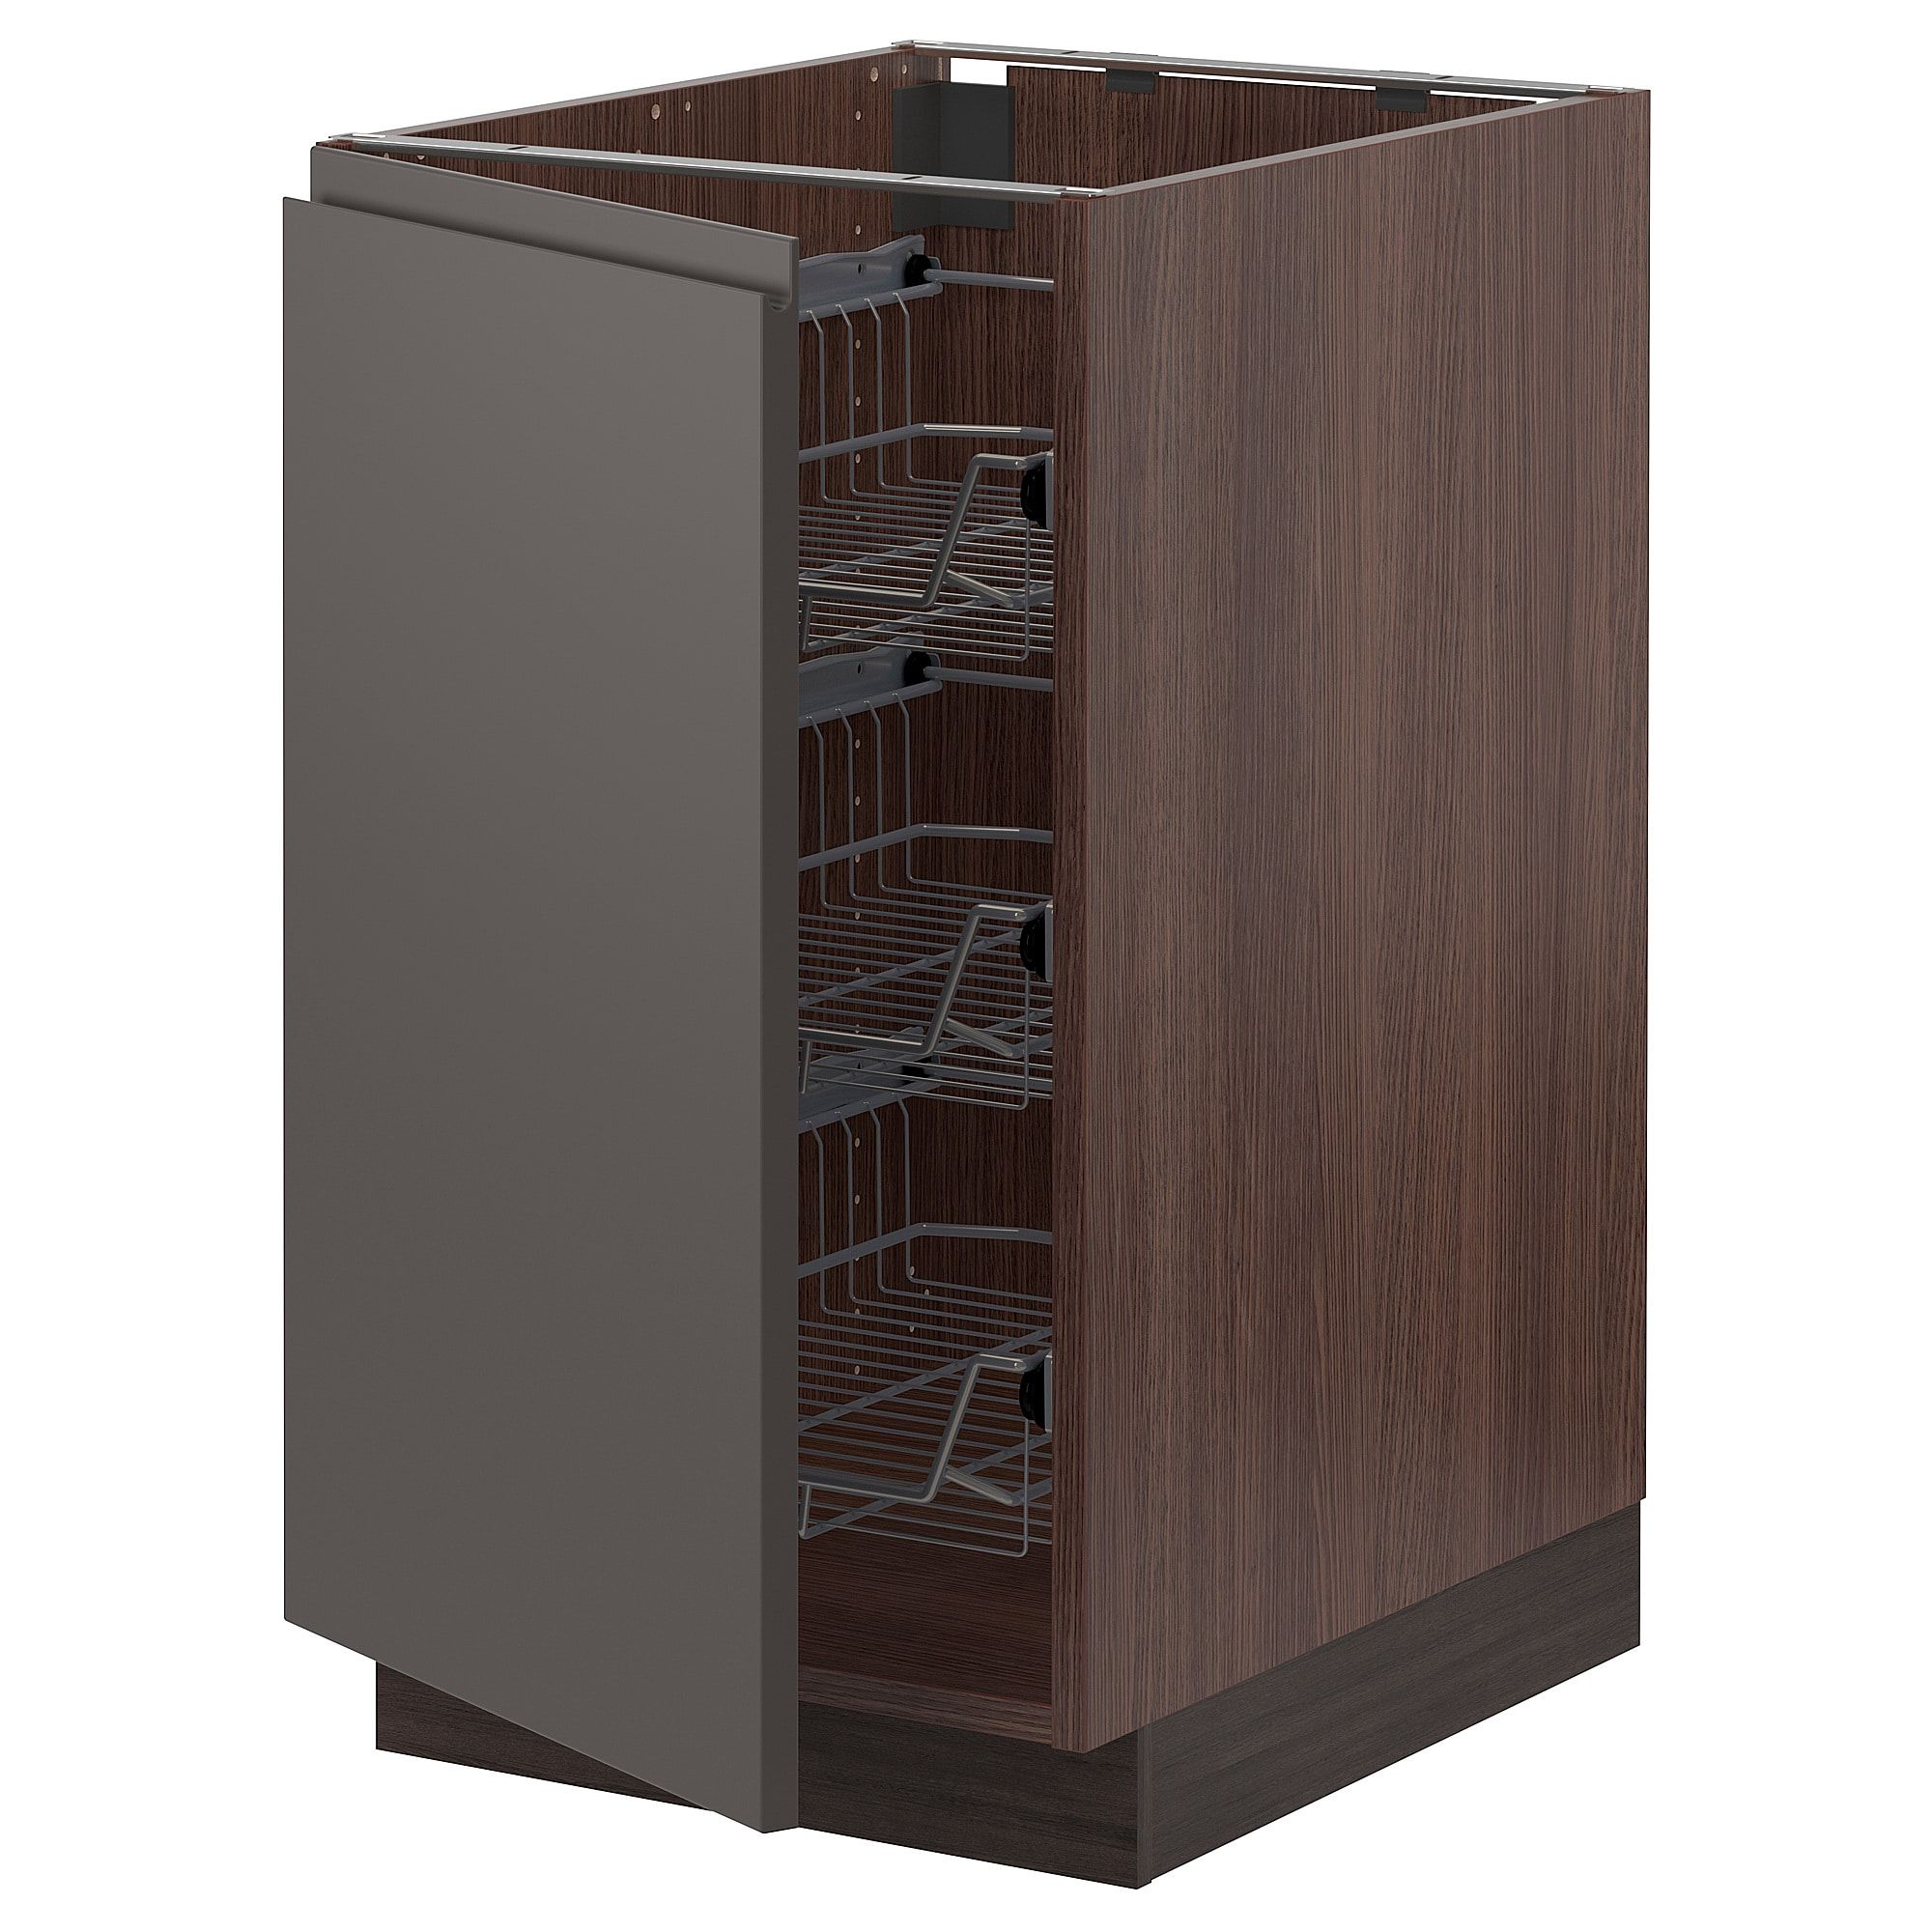 IKEA SEKTION wood effect brown Base with wire